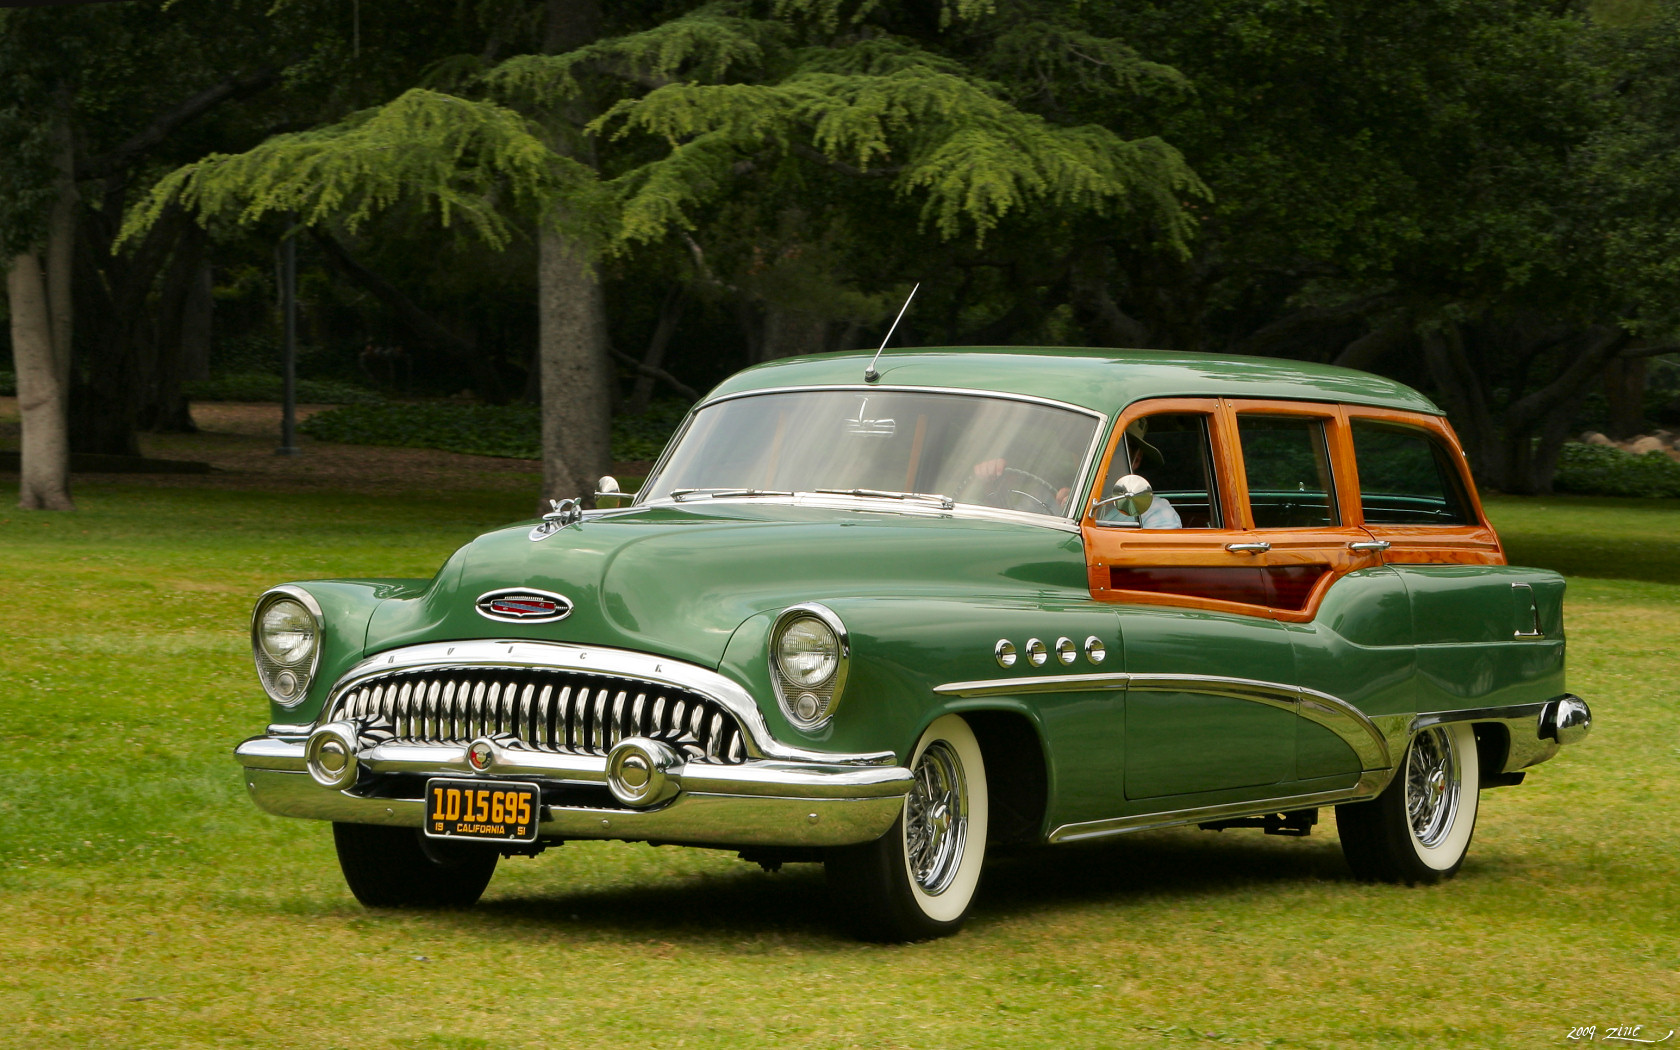 datei:1953 buick roadmaster estate wagon - green - fvl – wikipedia